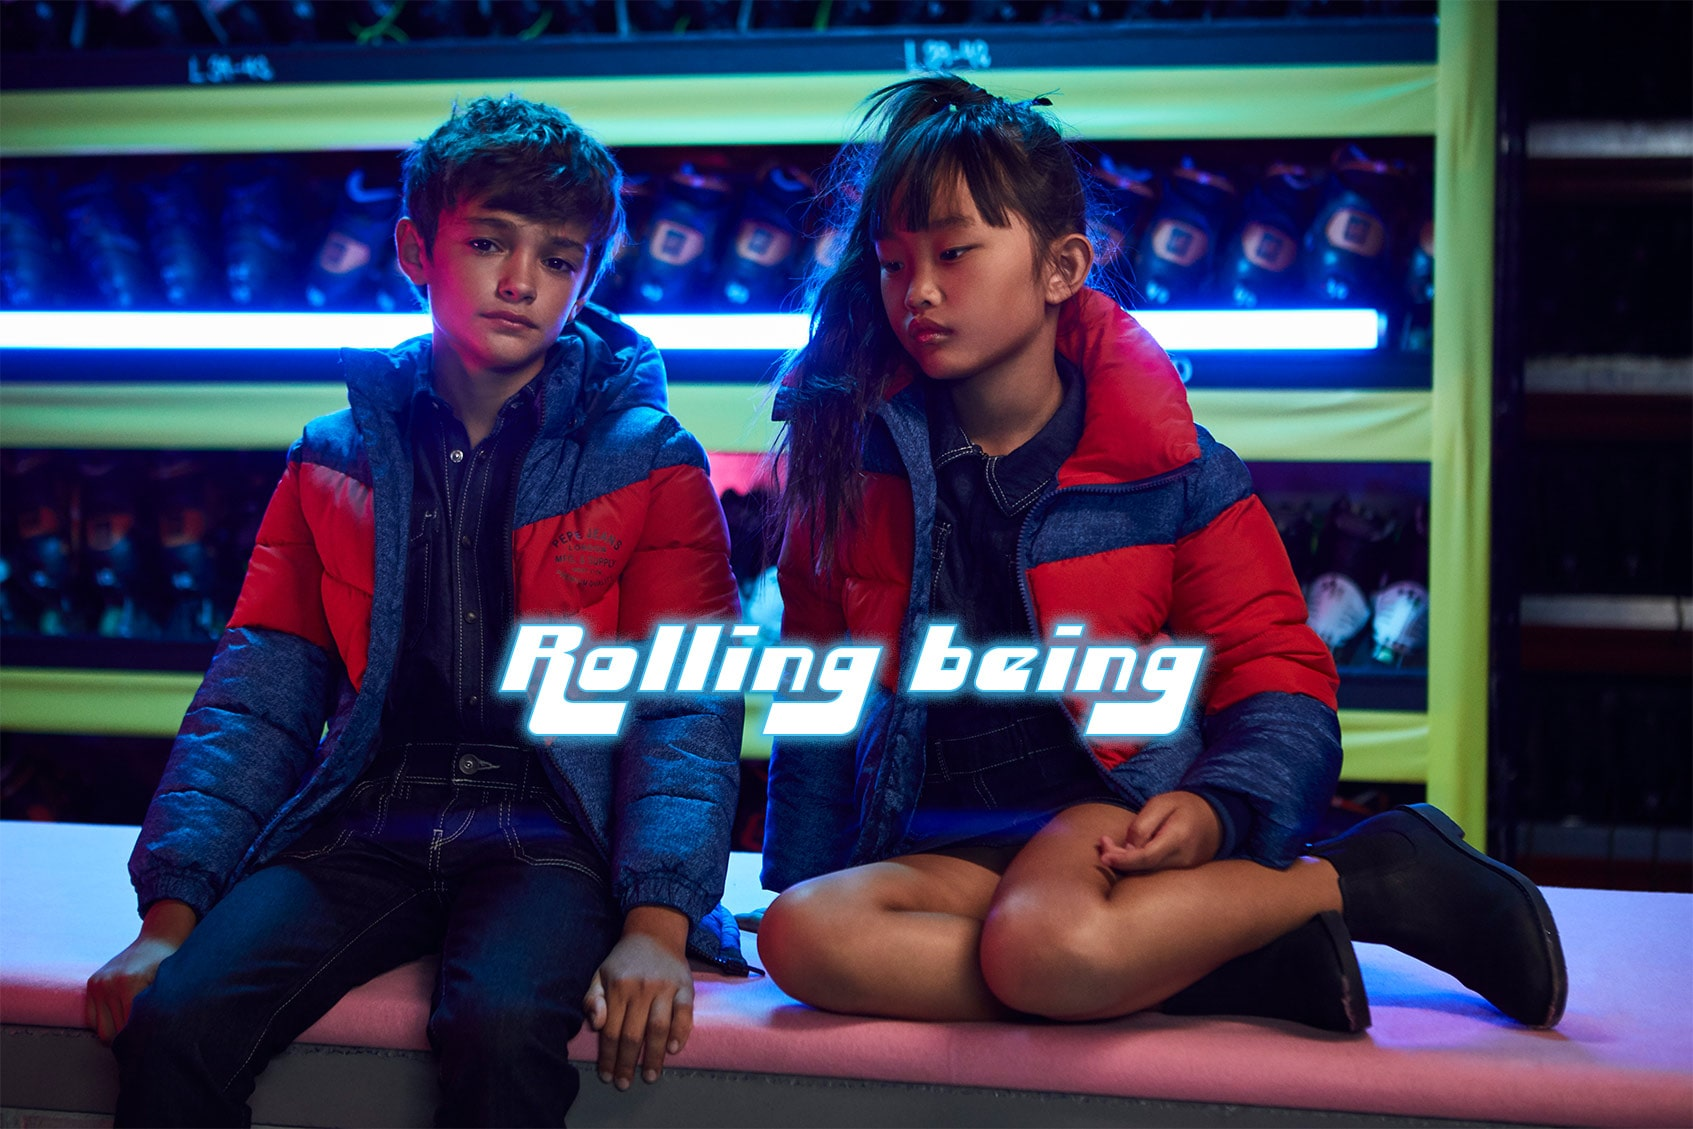 Rolling Being - Junior New In